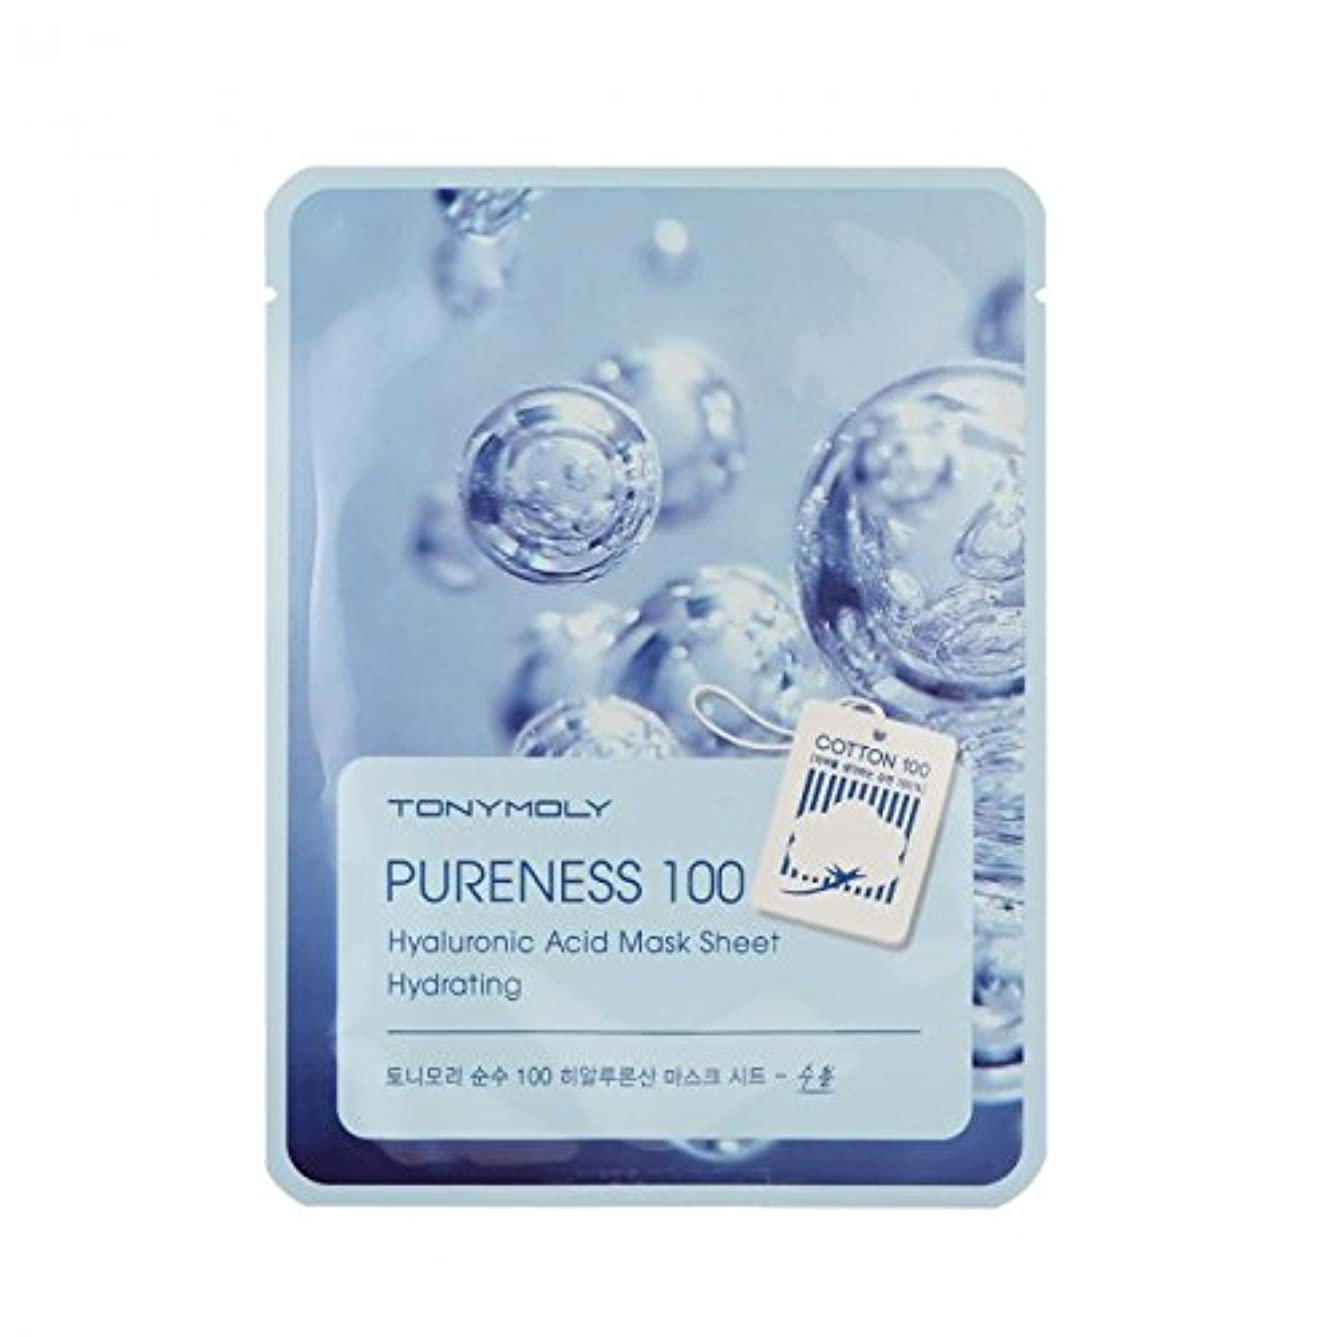 予想する立派な液化する(3 Pack) TONYMOLY Pureness 100 Hyaluronic Acid Mask Sheet Hydrating (並行輸入品)